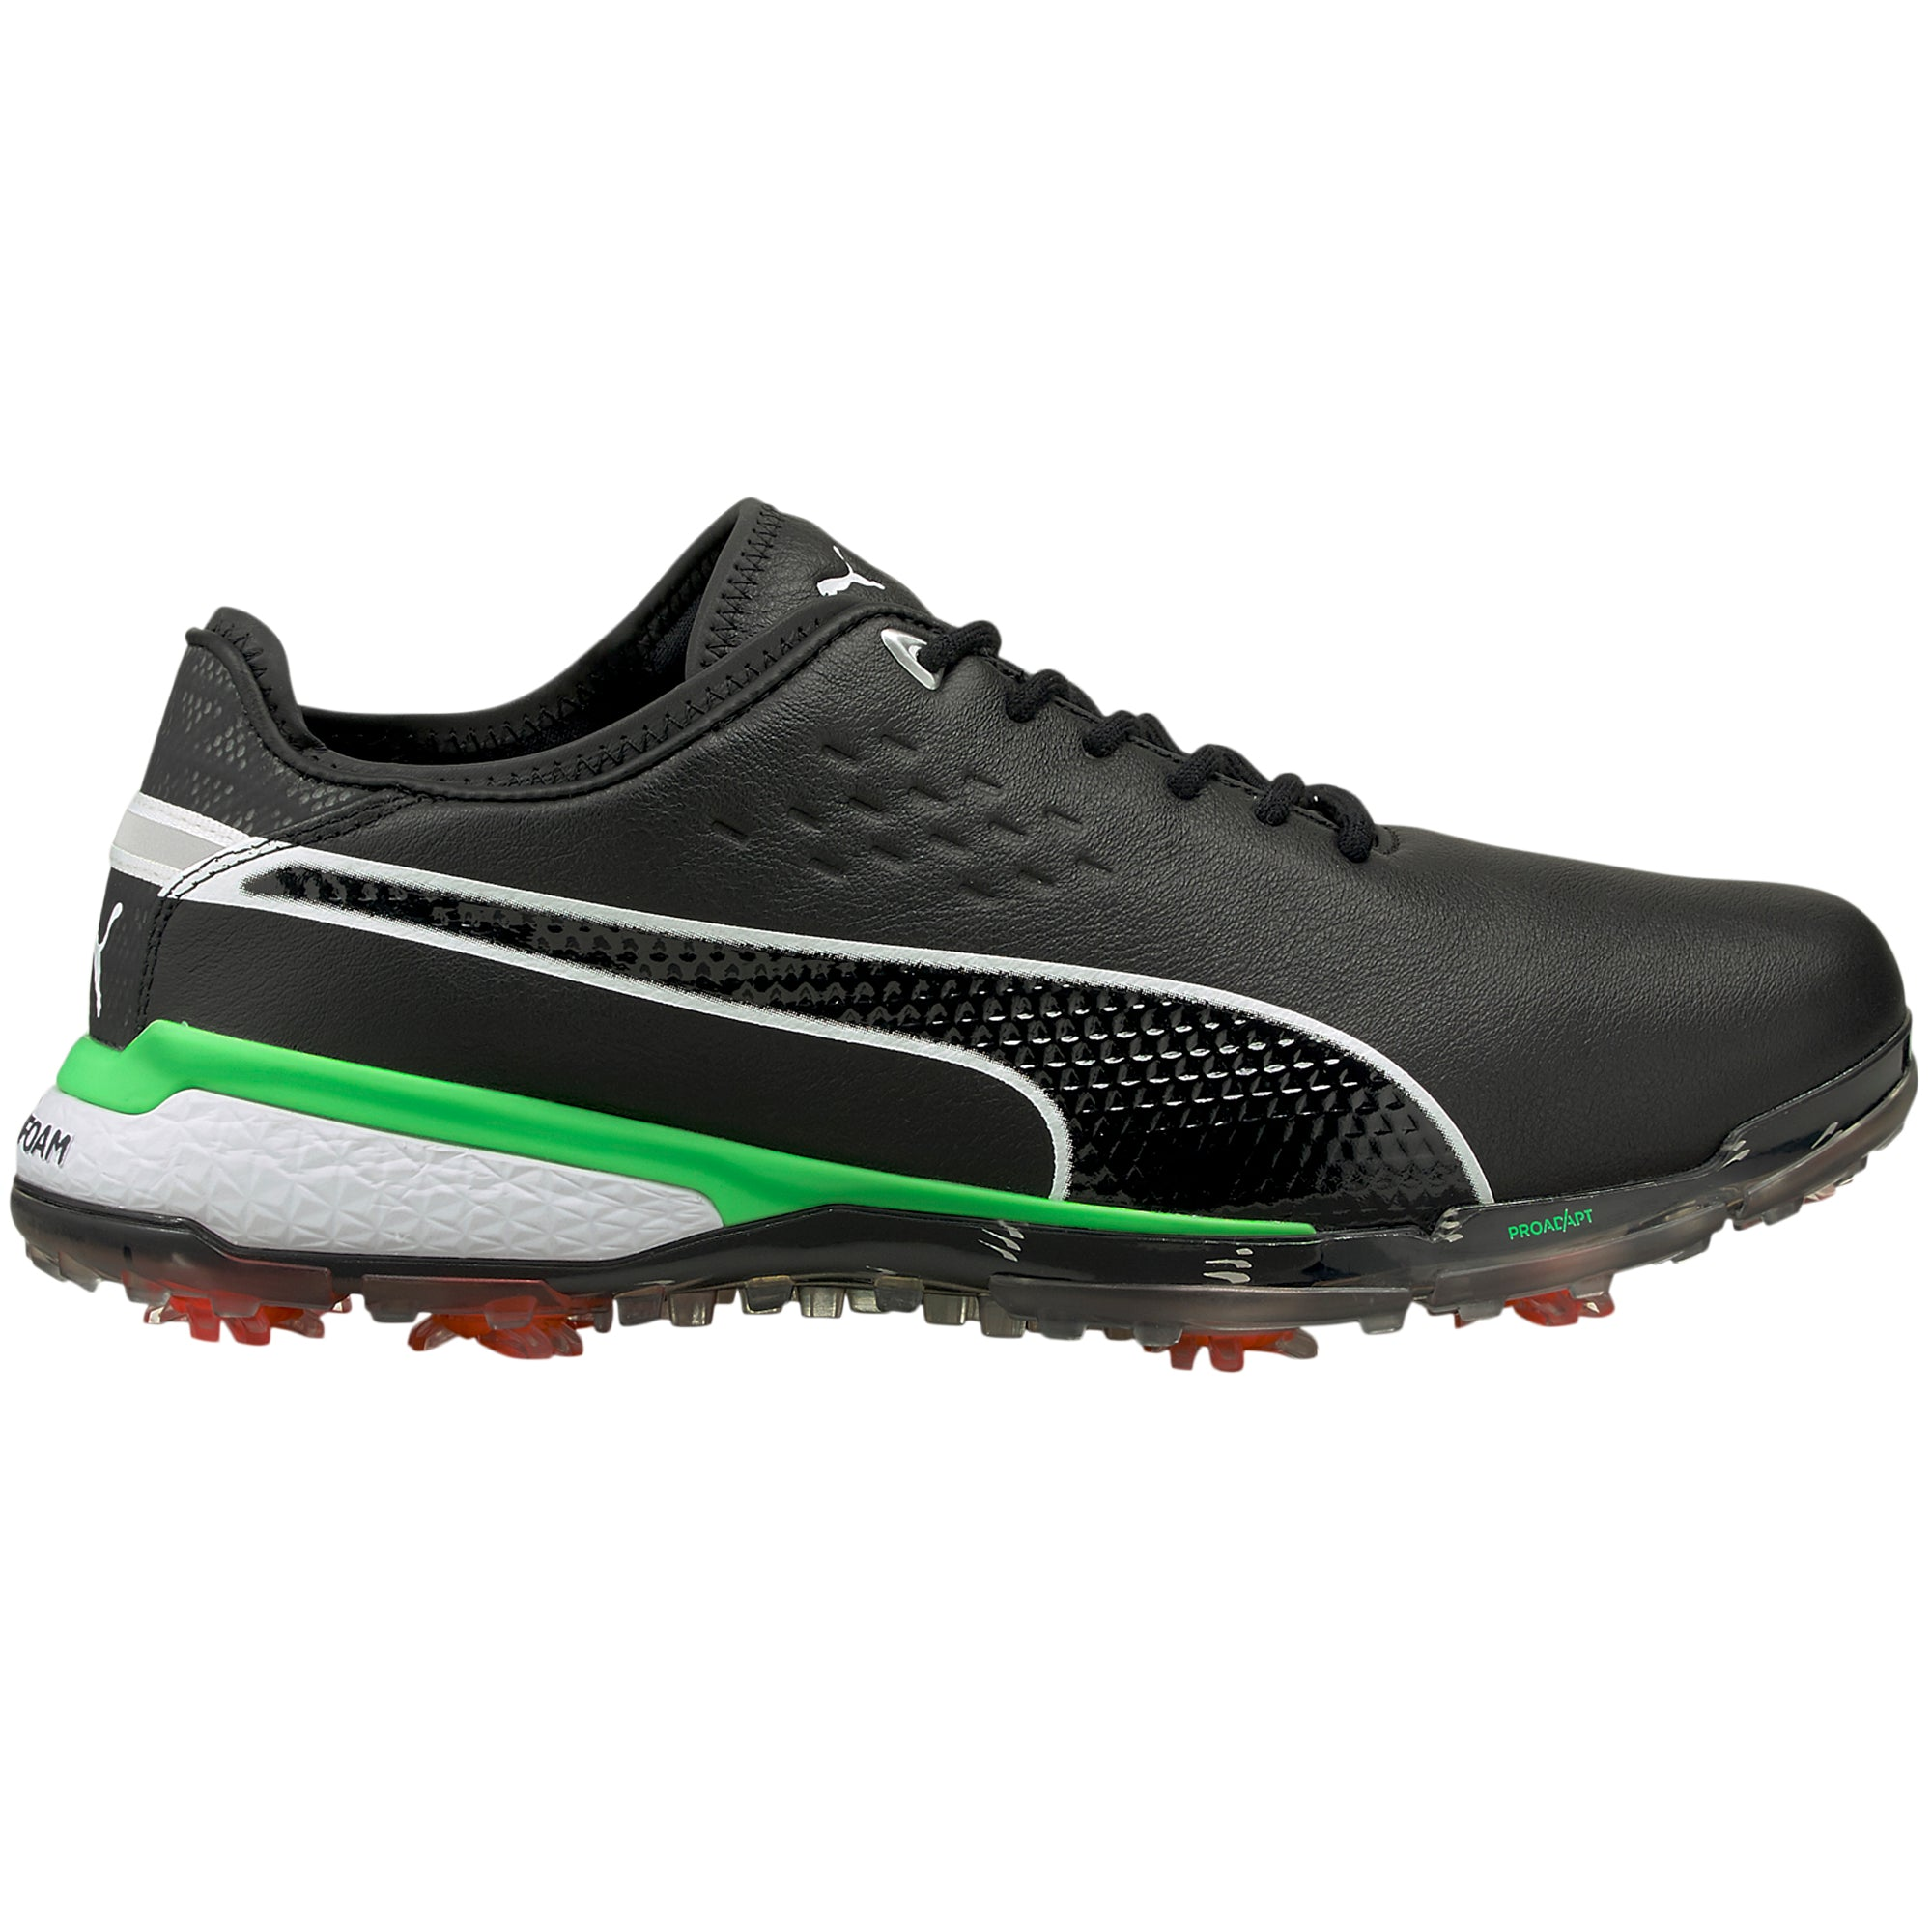 Puma Ignite ProAdapt X LE Golf Shoes